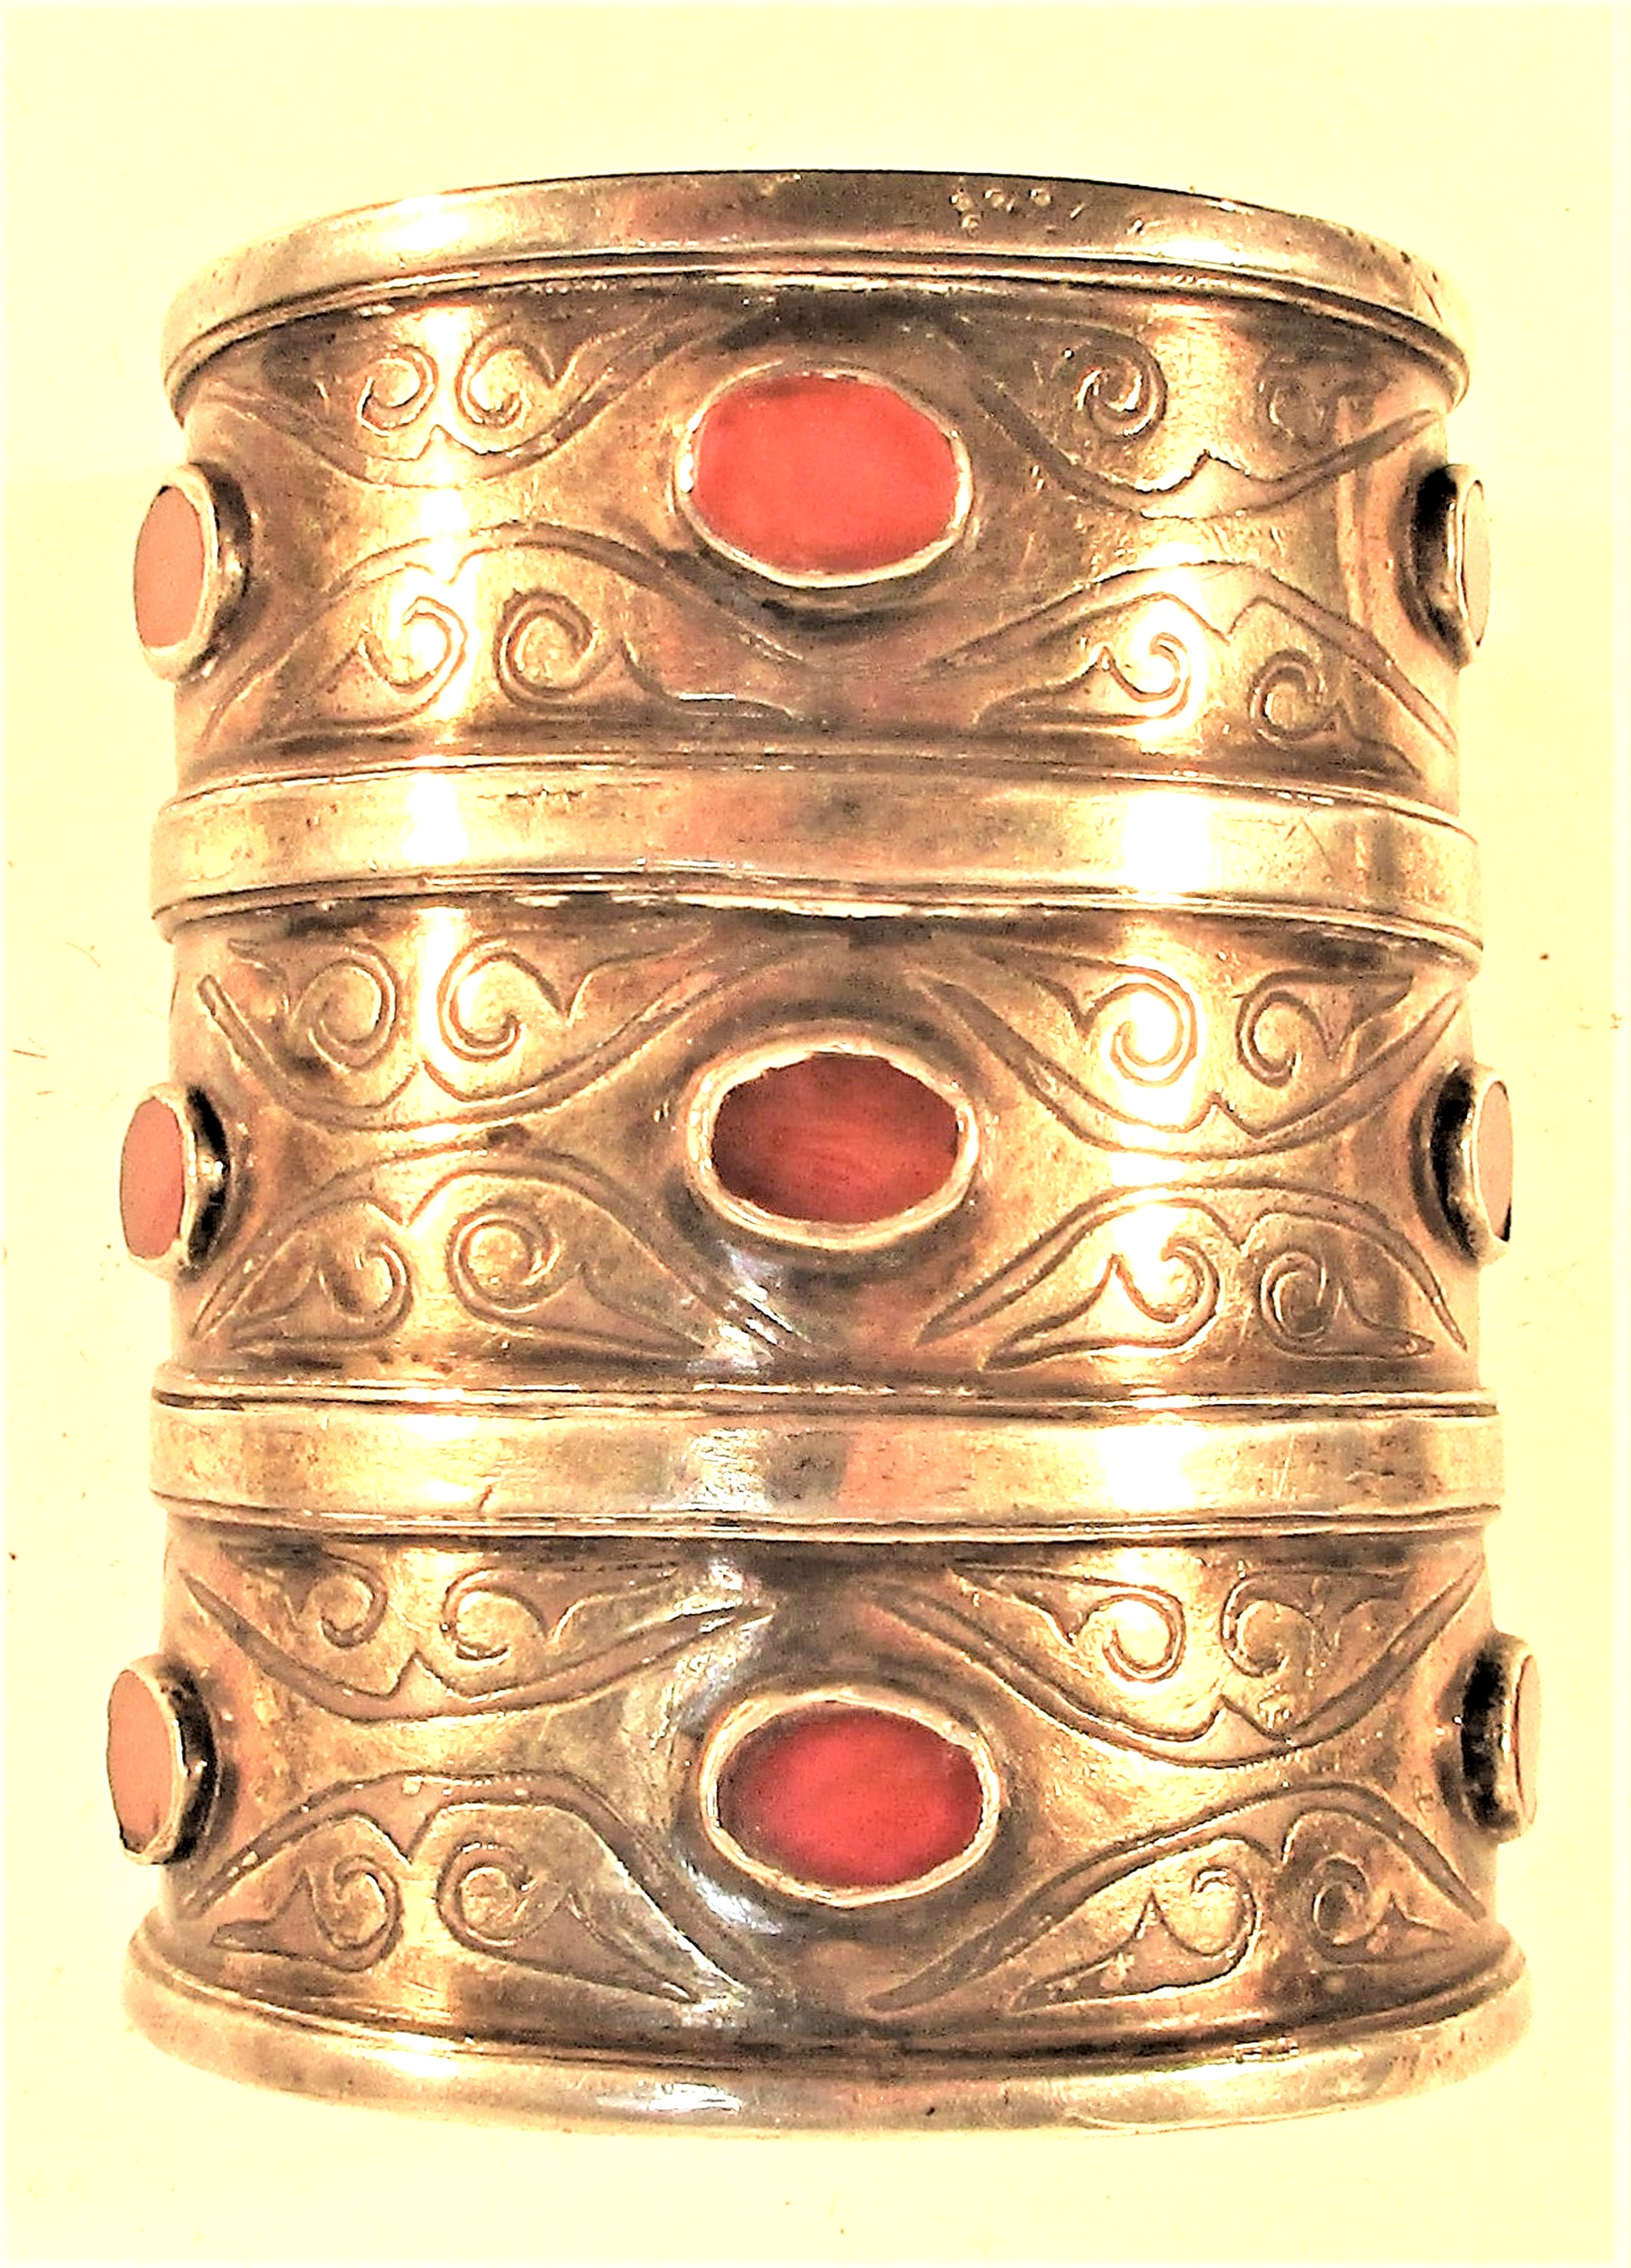 A very traditional antique Turkoman bracelet. White metal with gold wash and 9 cornelians. This is a